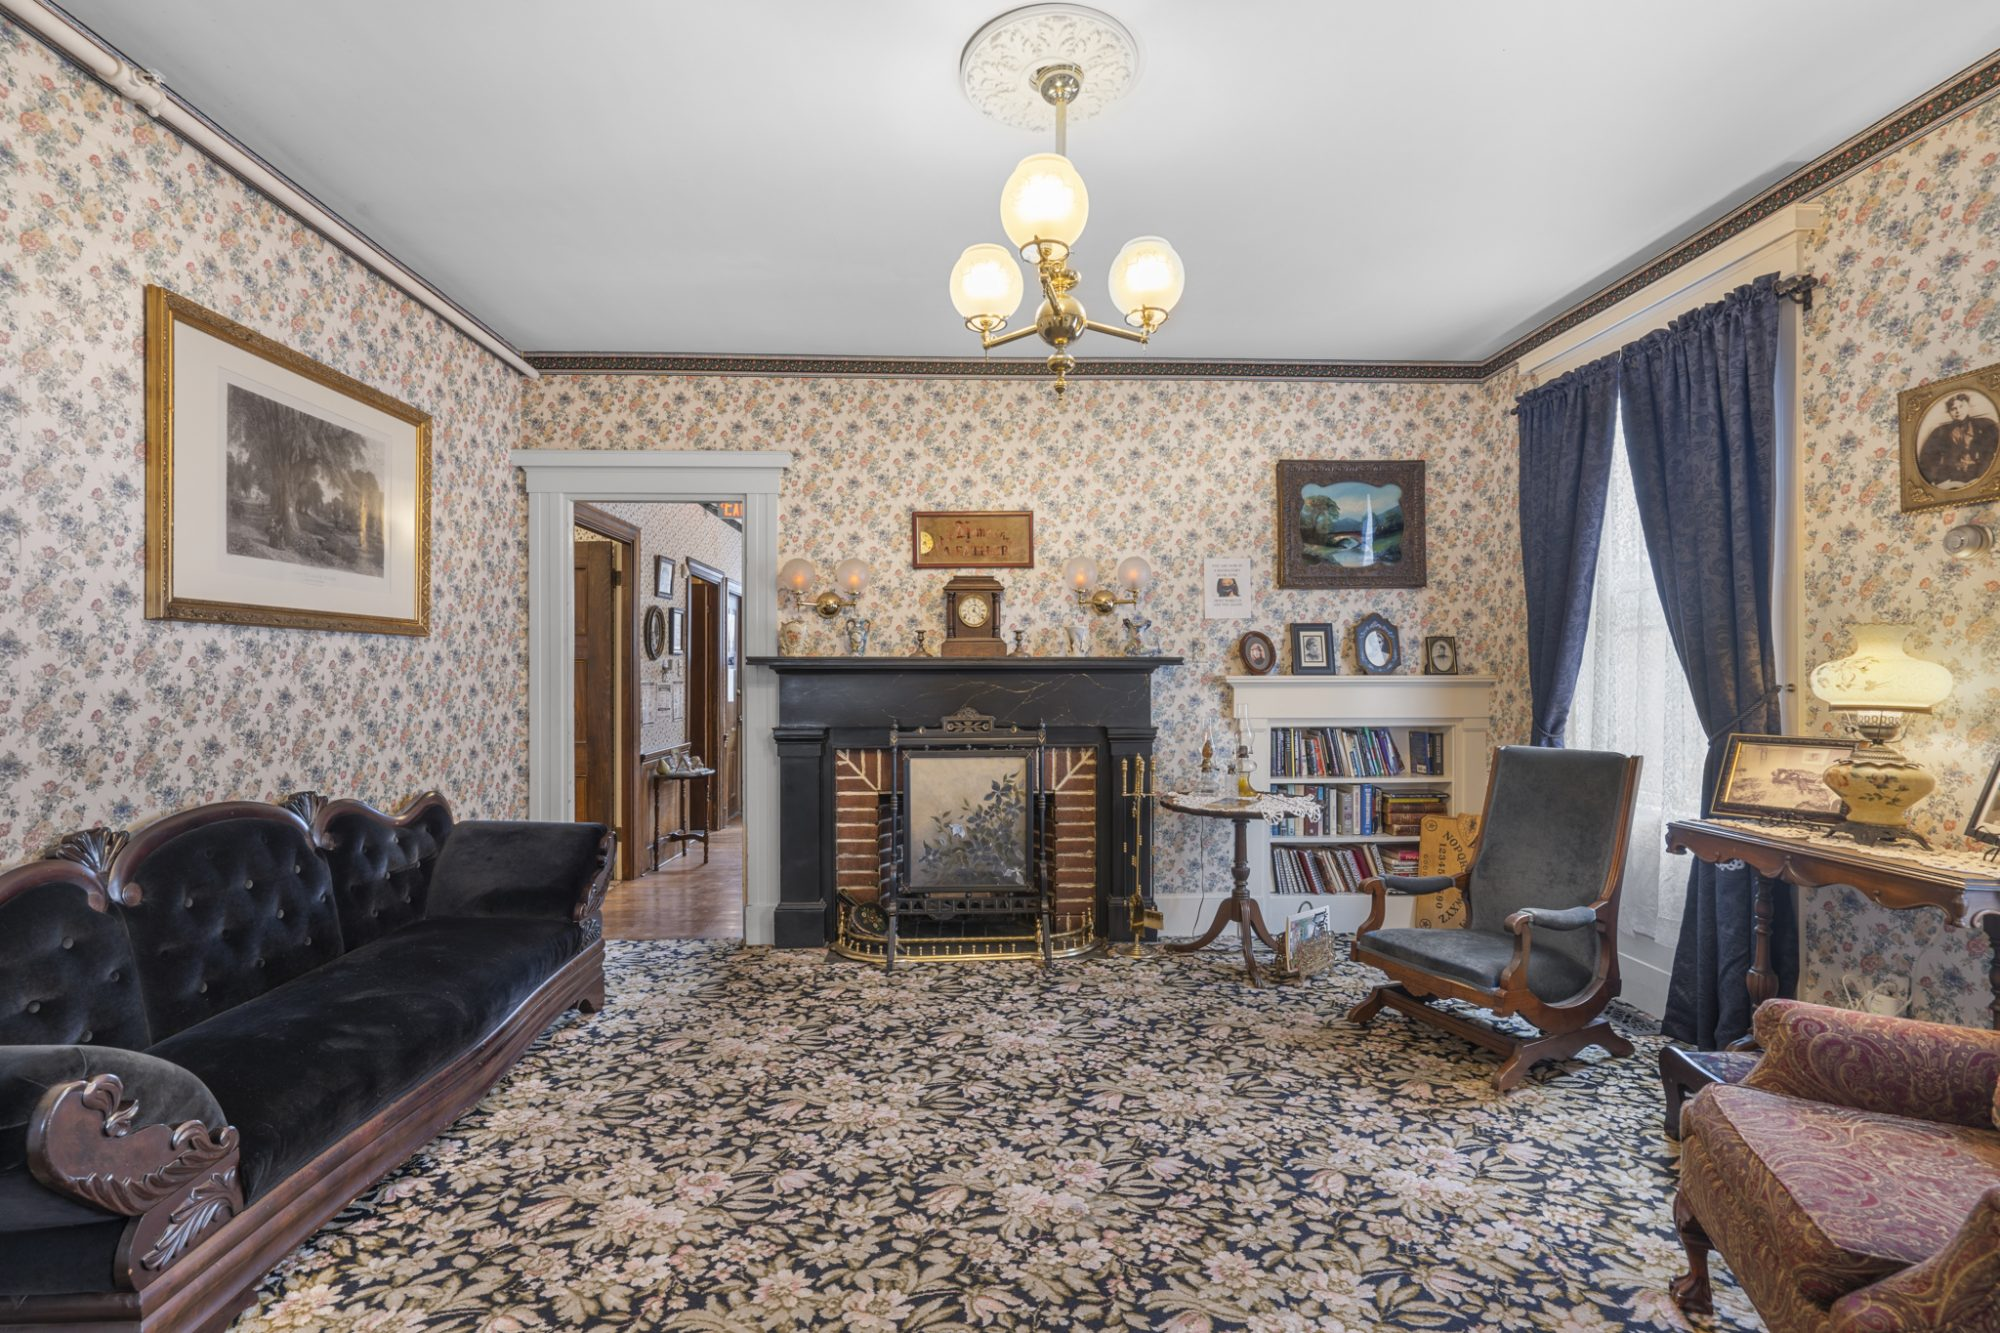 Lizzie Borden House for Sale